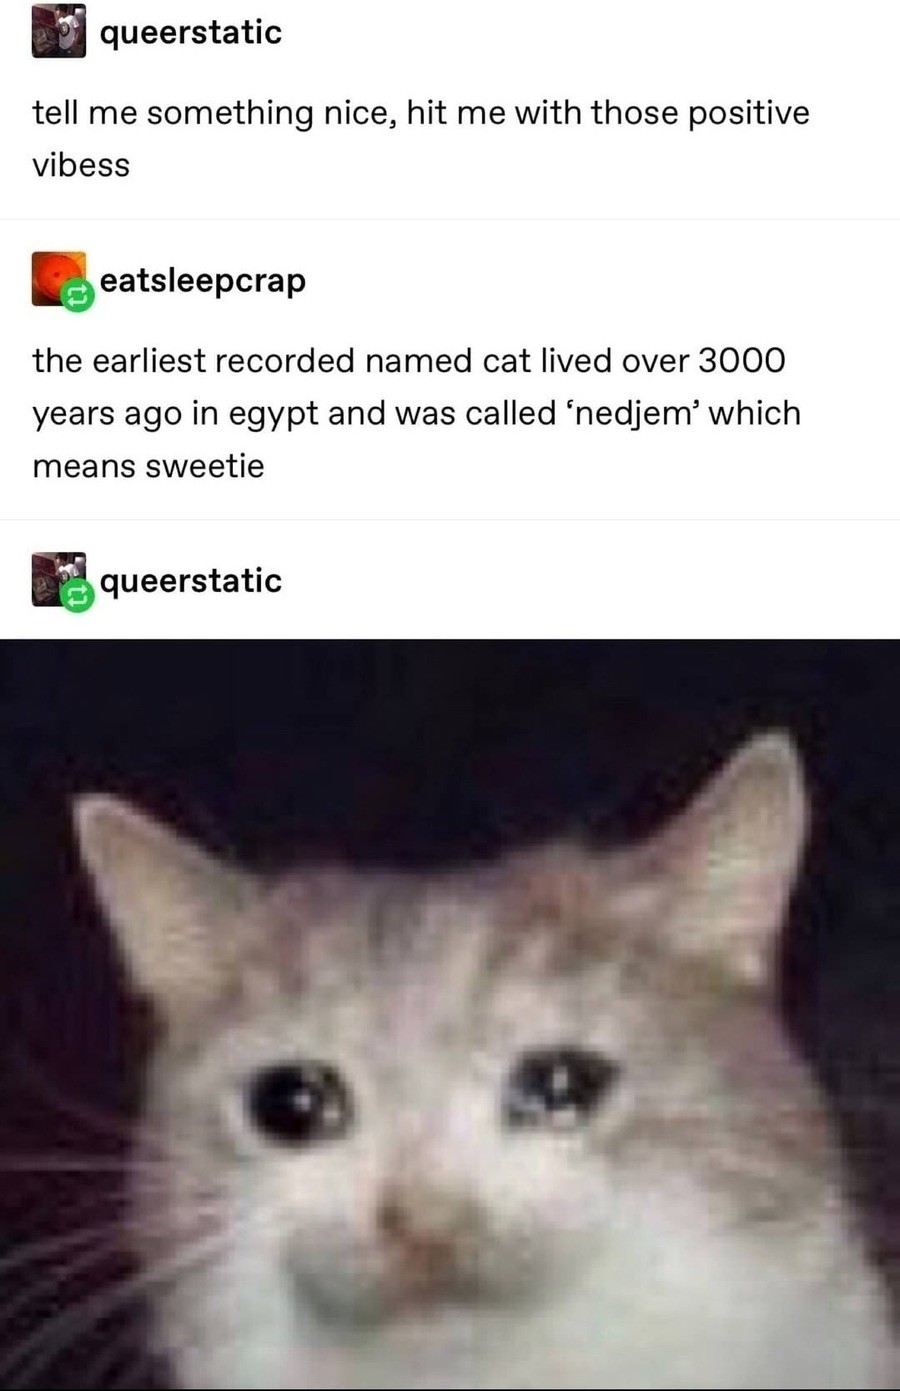 quack glistening wide-eyed Crane. .. Nedjem has been dead for 3,000 years.